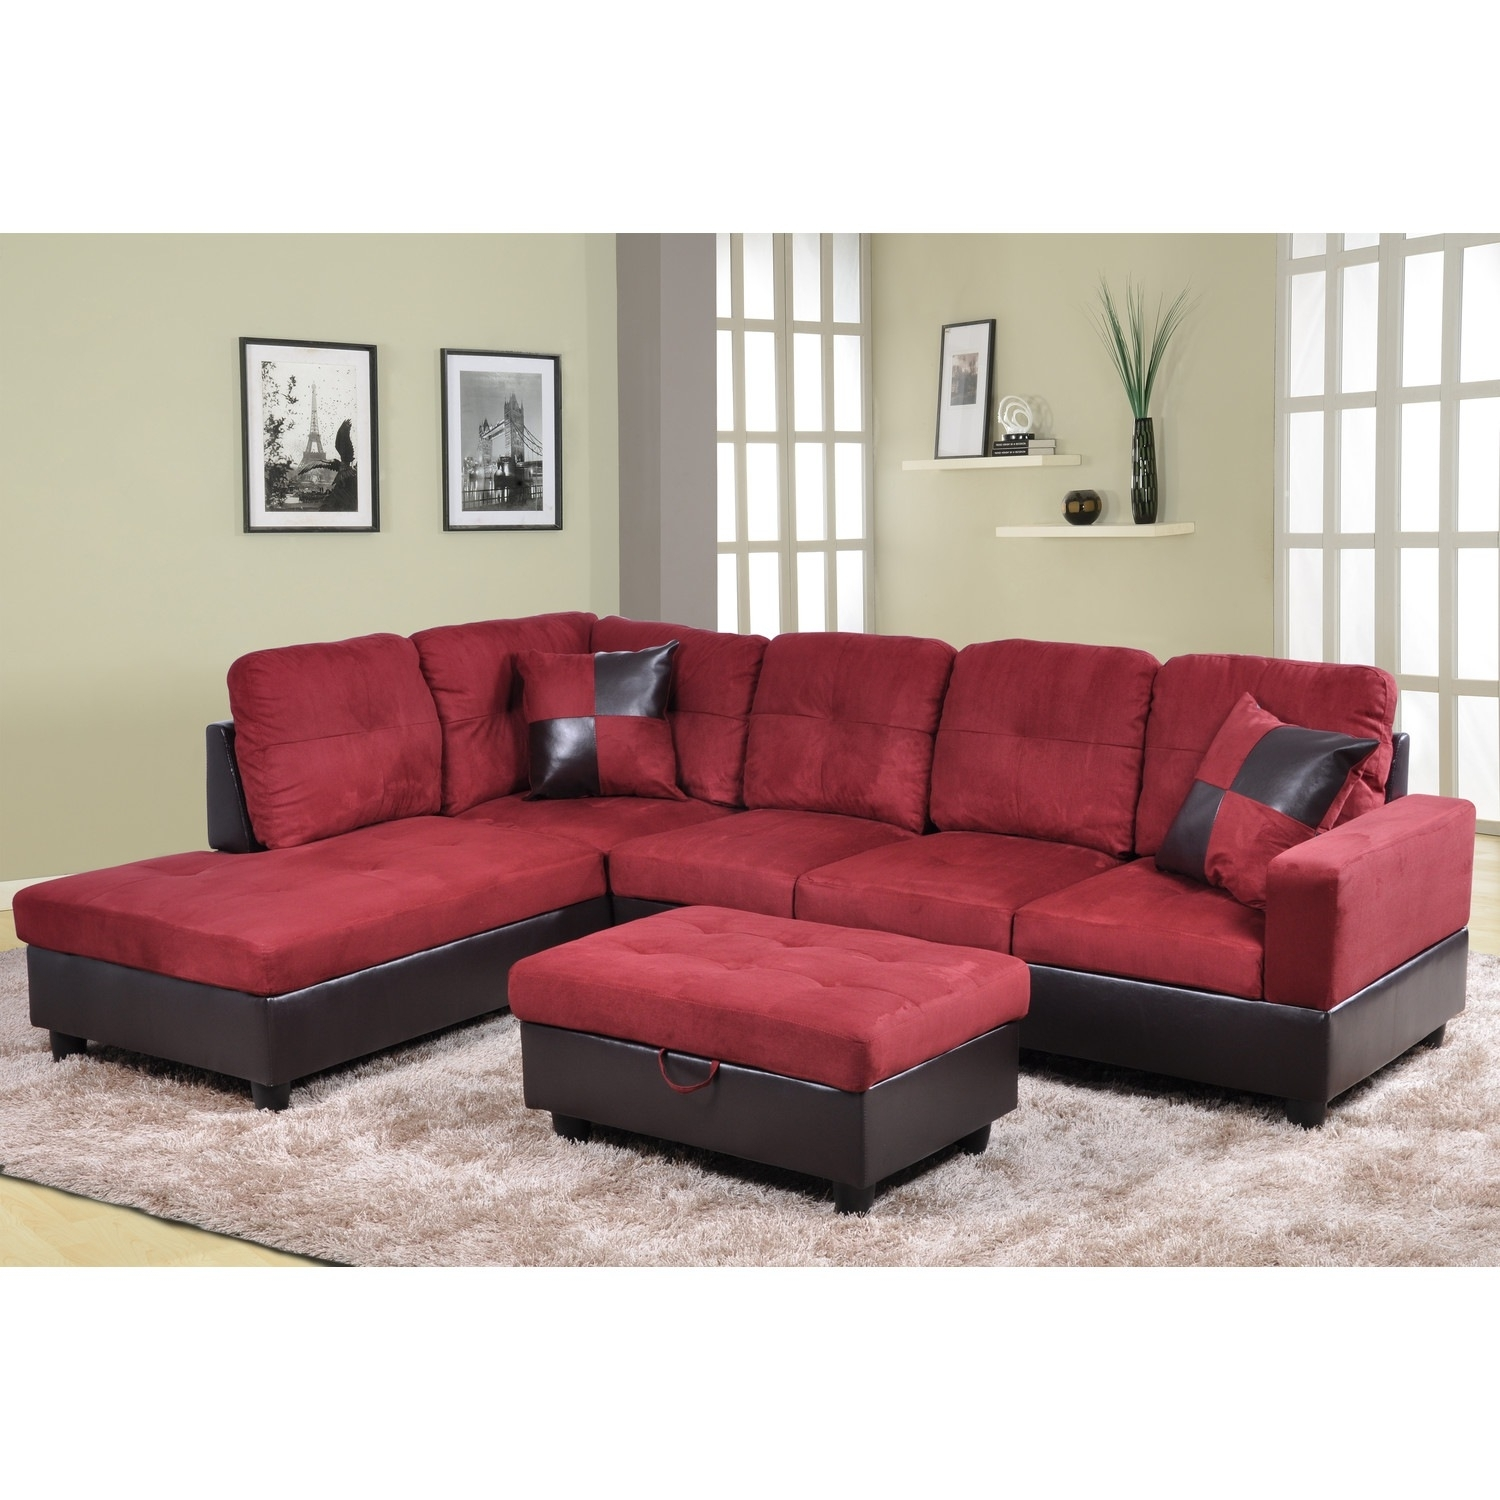 Cheap Sectional Sofas For Sale Inspirational Furniture Sears Sofa In Sectional Sofas At Sears (View 2 of 15)